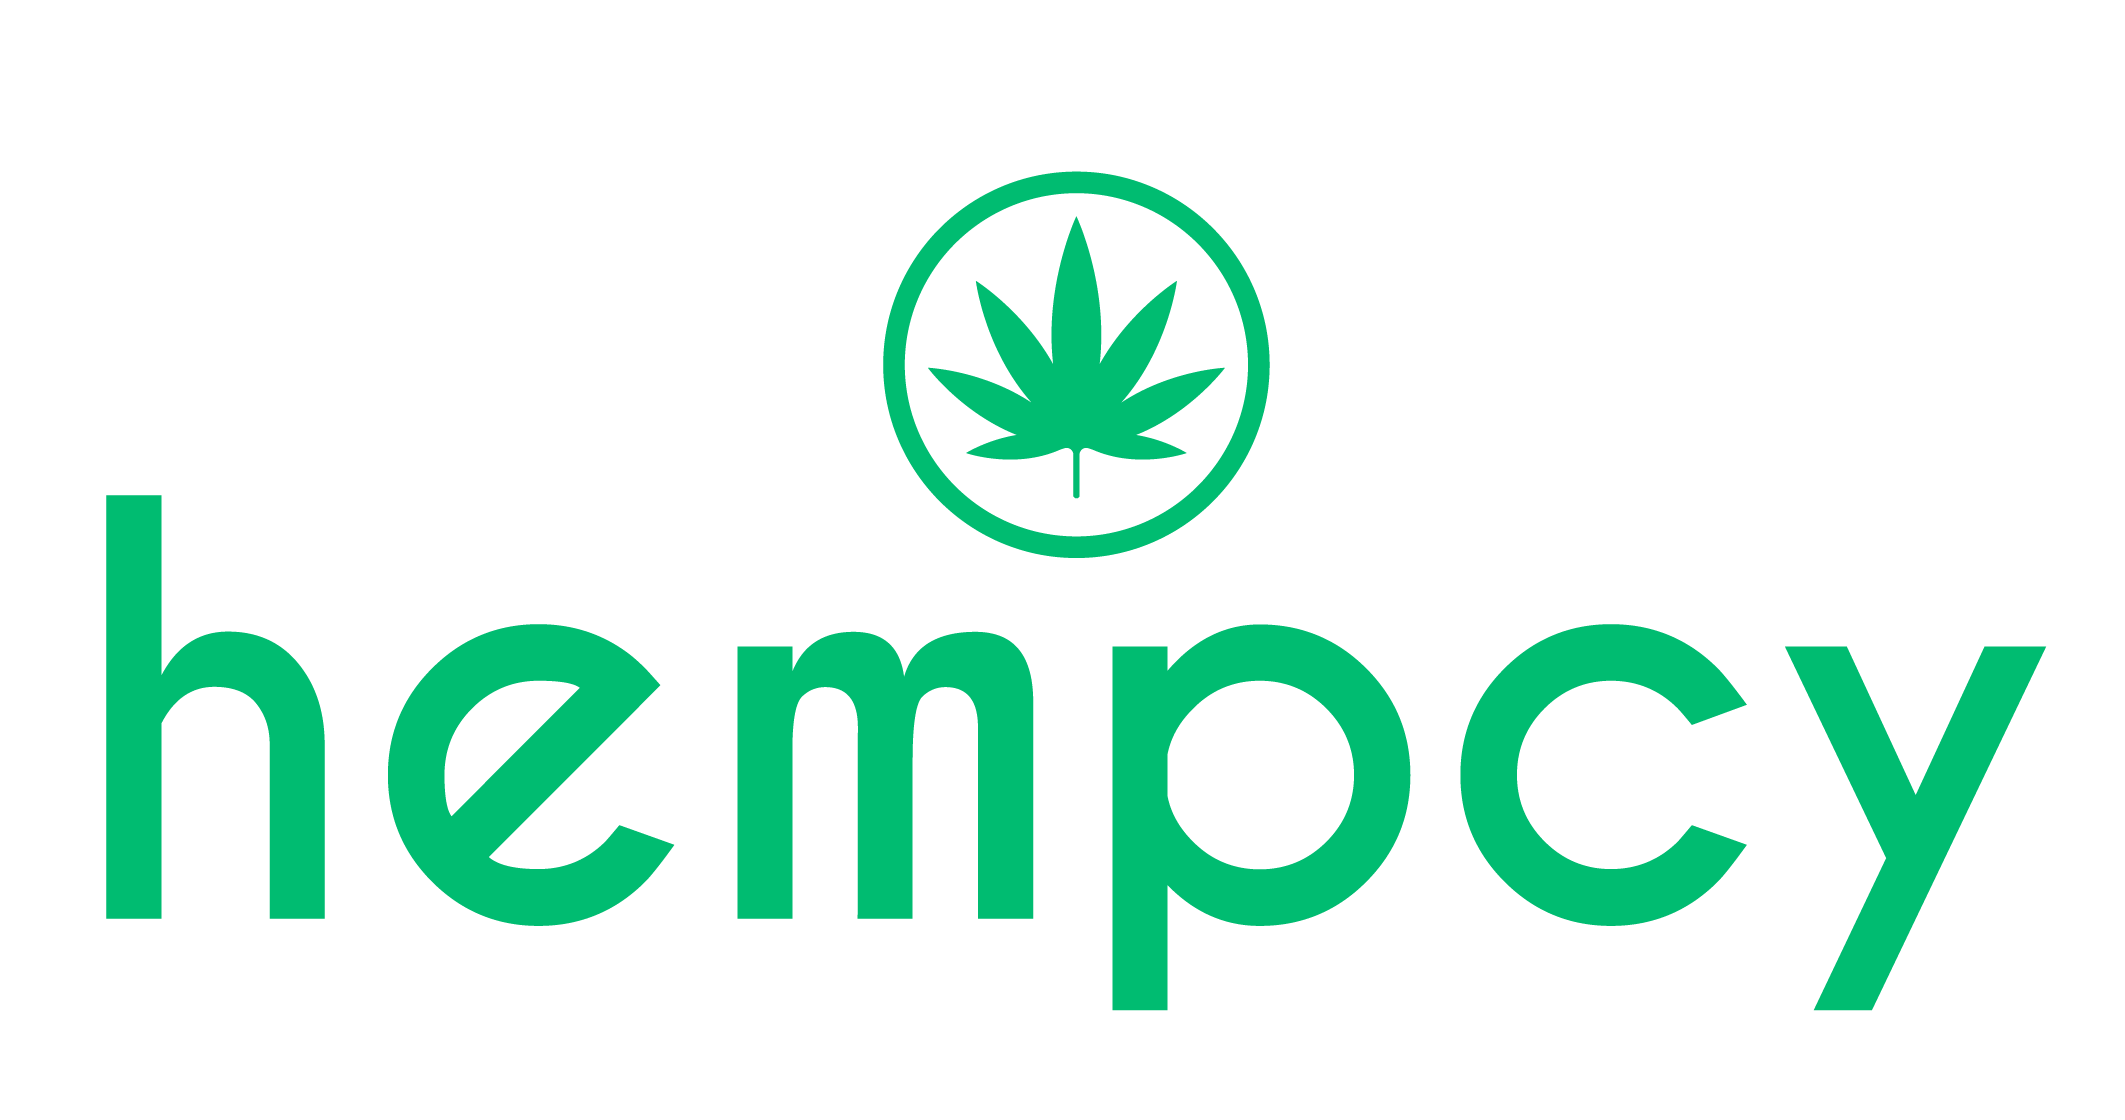 <p><strong>Hempcy</strong>Booth C10</p>